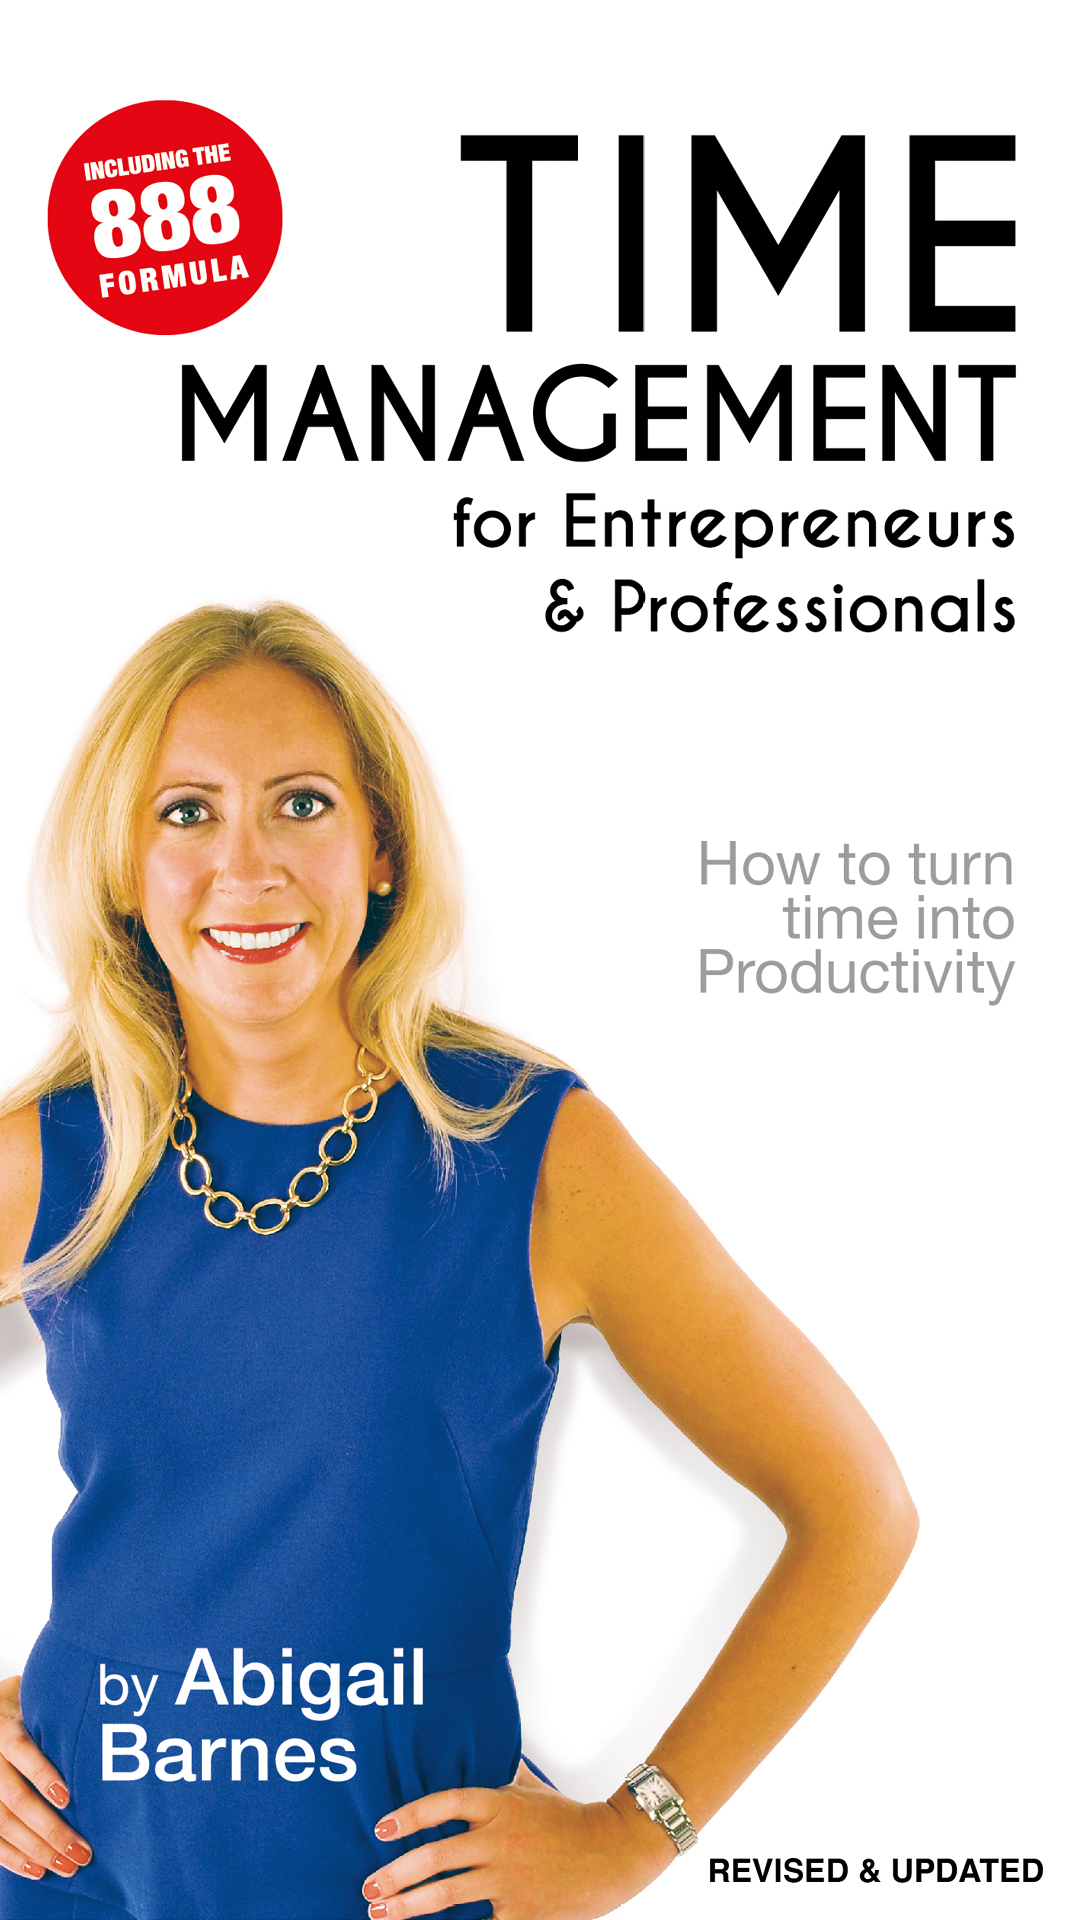 Time Management for Entrepreneurs and Professionals